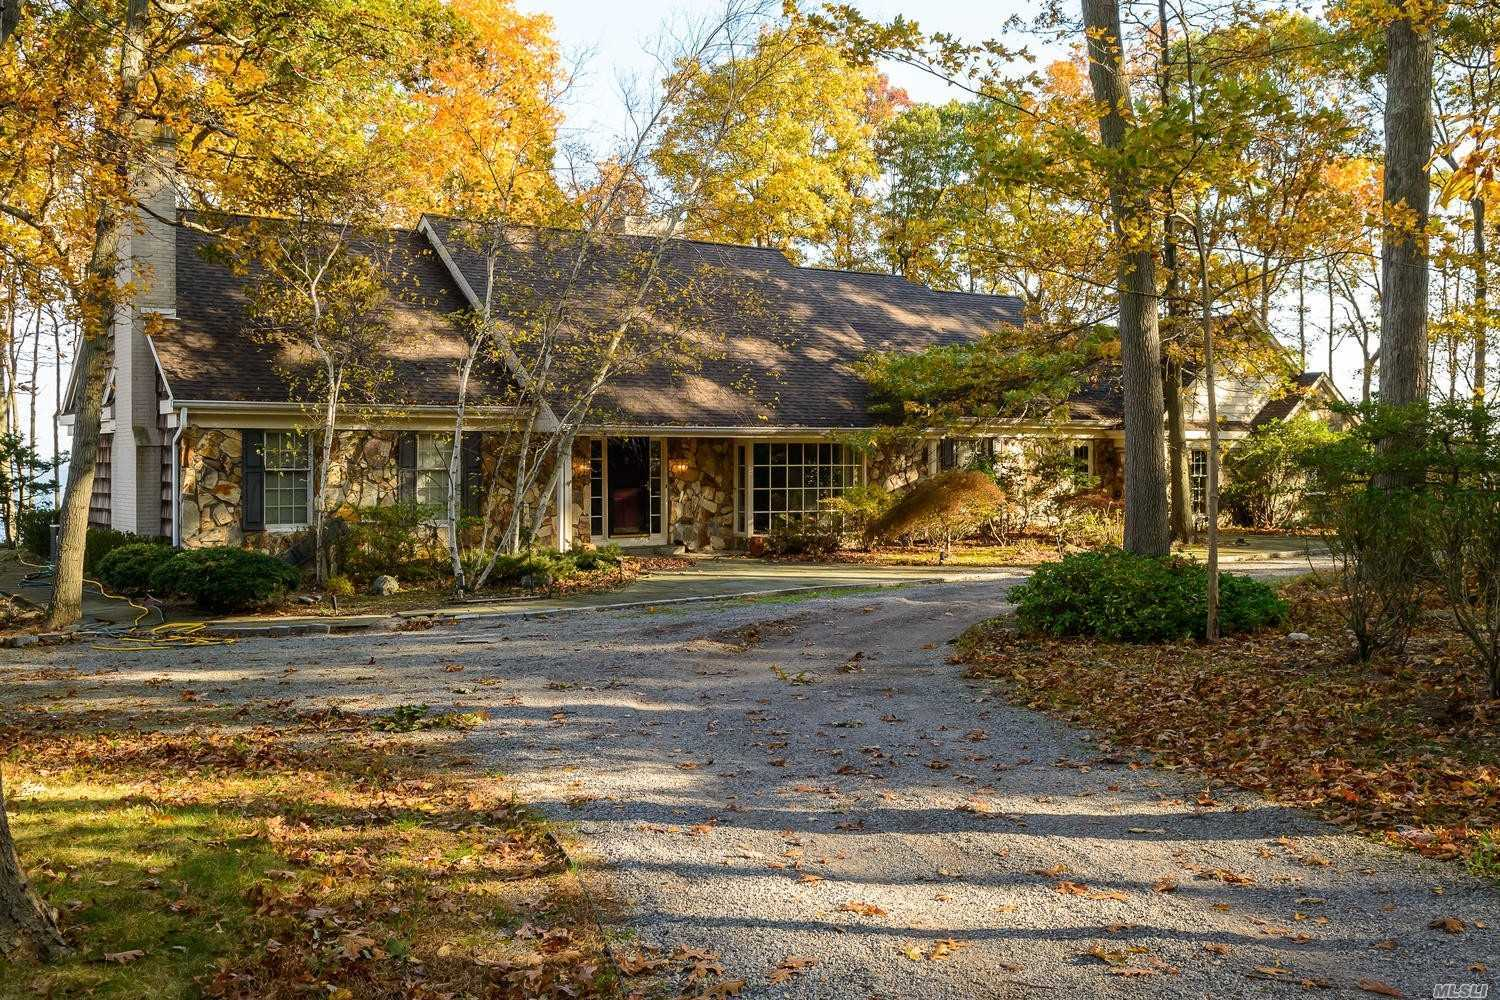 This Waterfront Home Has Breathtaking Views Of The Long Island Sound With A Secluded And Serene Location! An Open Floor Plan For Today's Lifestyle And Almost Every Room Has These Spectacular Views From Family Room, Kitchen, Bedrooms And Study. A Wood Burning Fireplace In The Family Room And Library. A Wonderful Setting Awaits You In This Waterfront Residence.